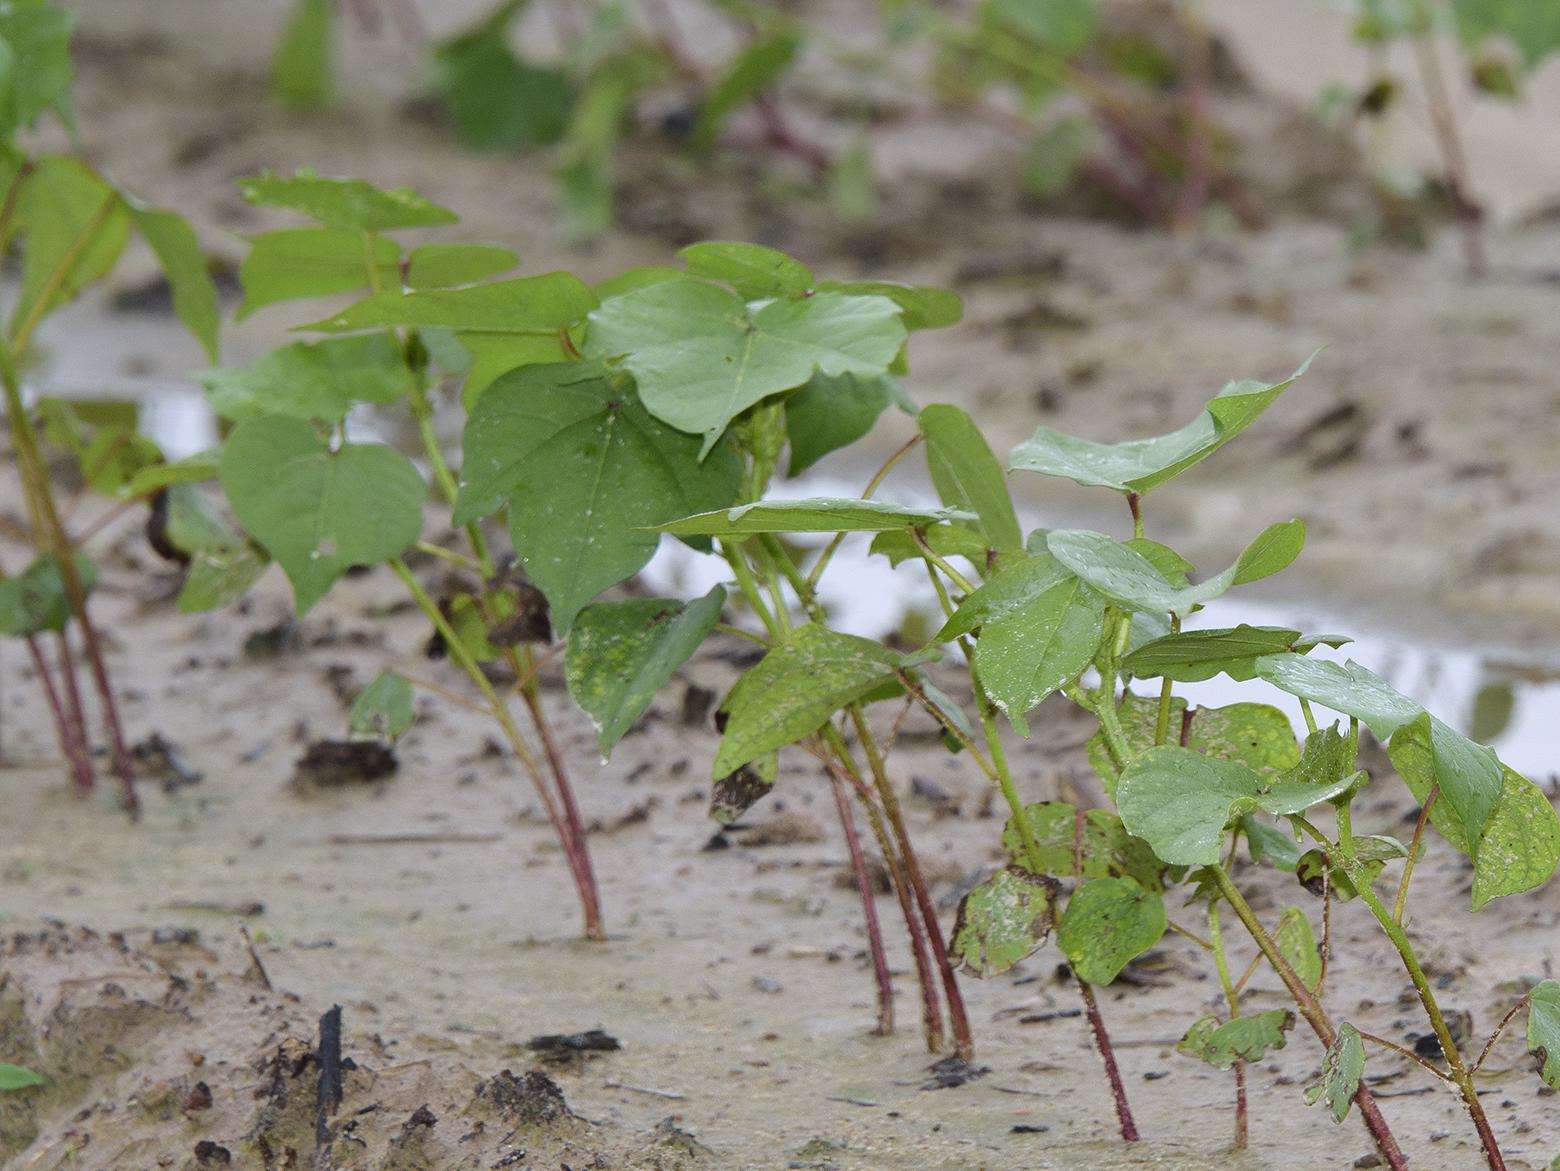 Cotton across the state has been struggling with excess rainfall but remains in good shape at this point in the season. This cotton was growing in a saturated field June 22, 2017, at Mississippi State University in Starkville. (Photo by MSU Extension Service/Kevin Hudson)